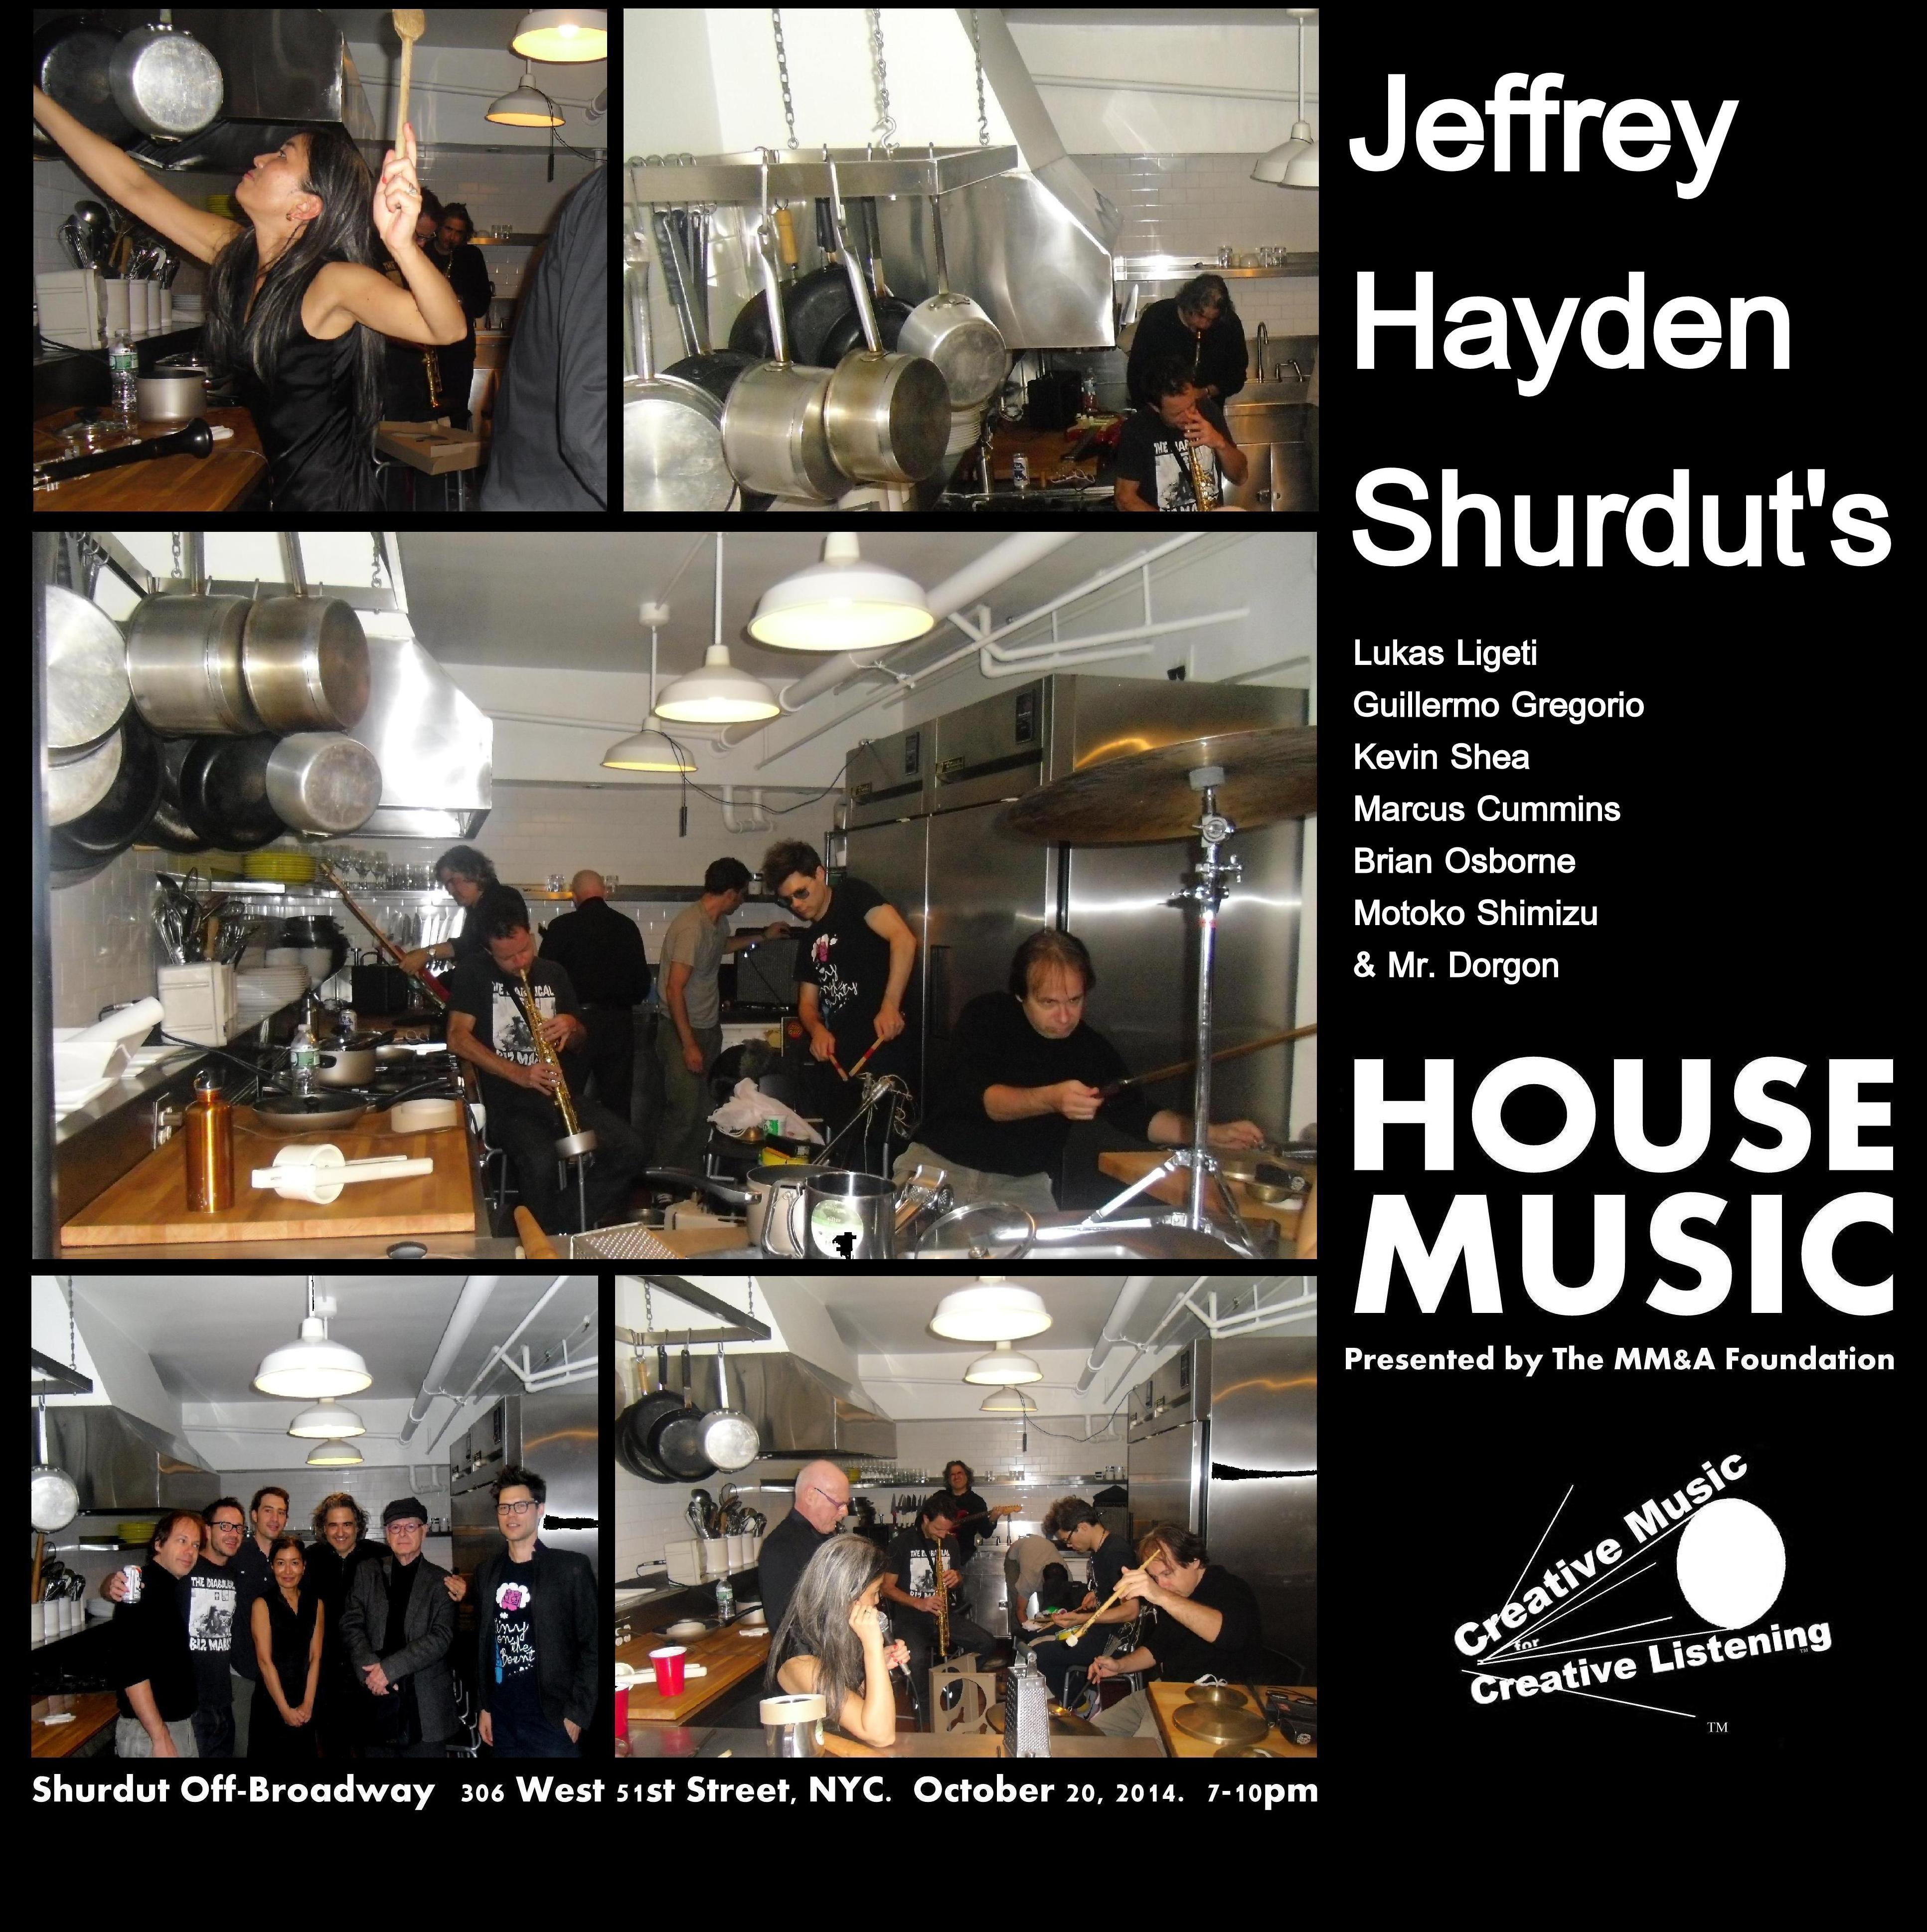 Jeffrey Hayden Shurdut's House Music